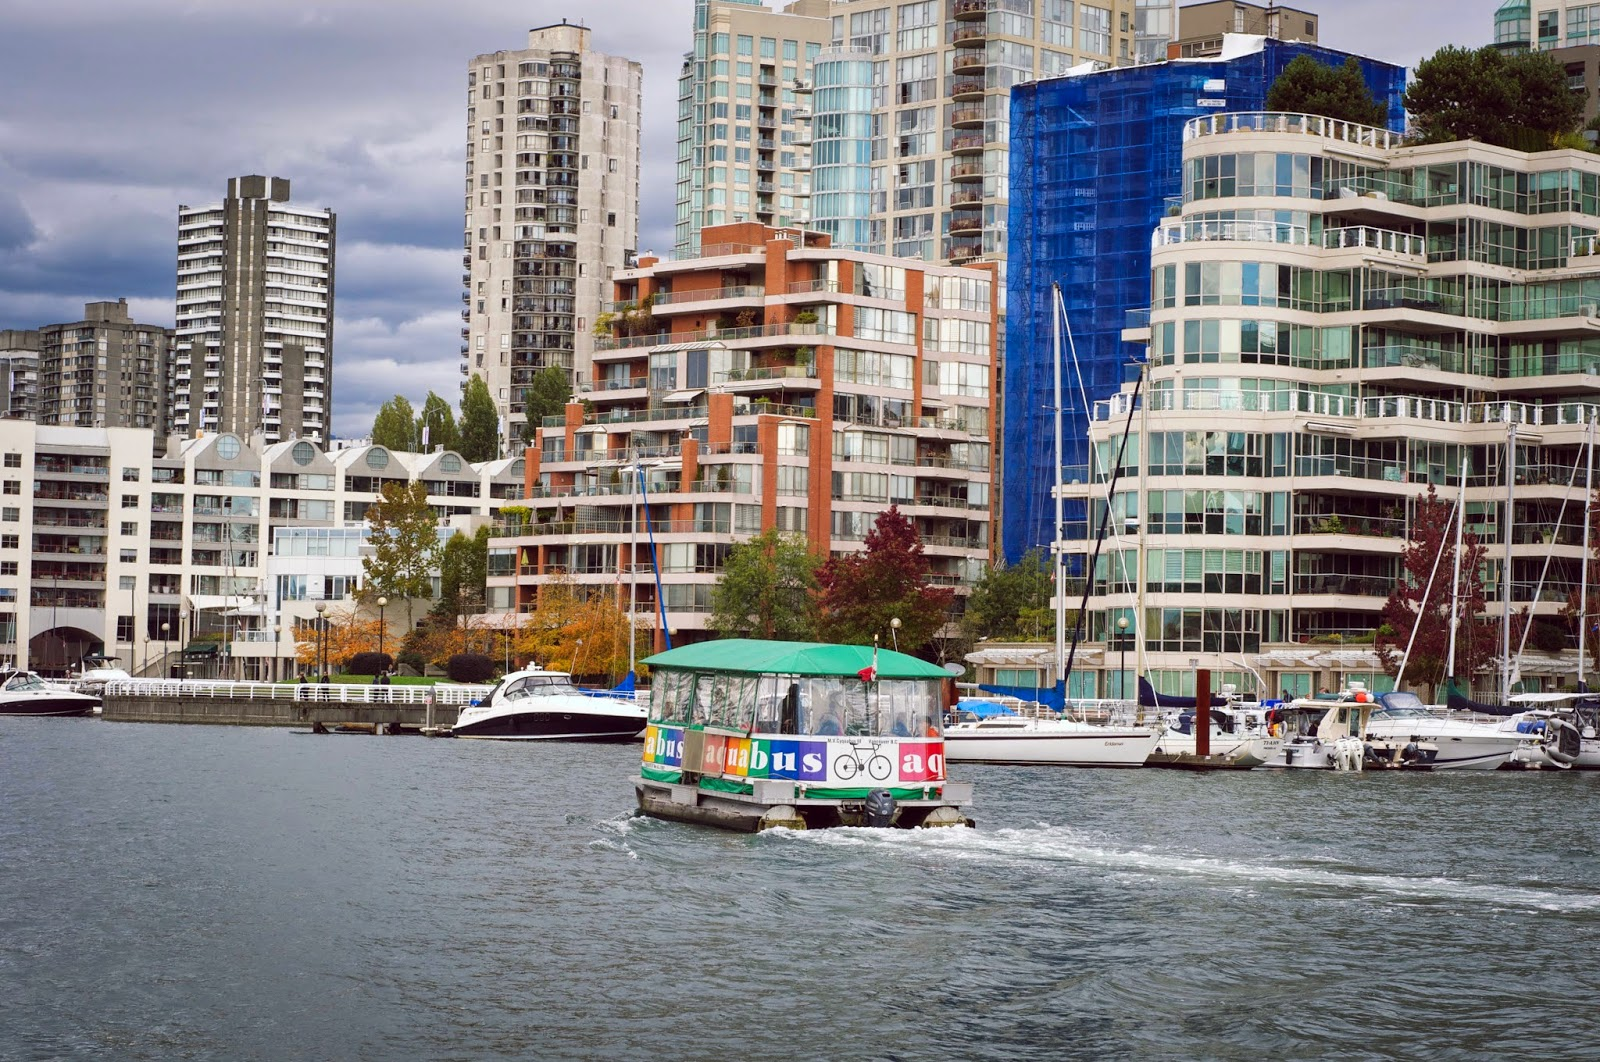 aquabus in vancouver, false creek